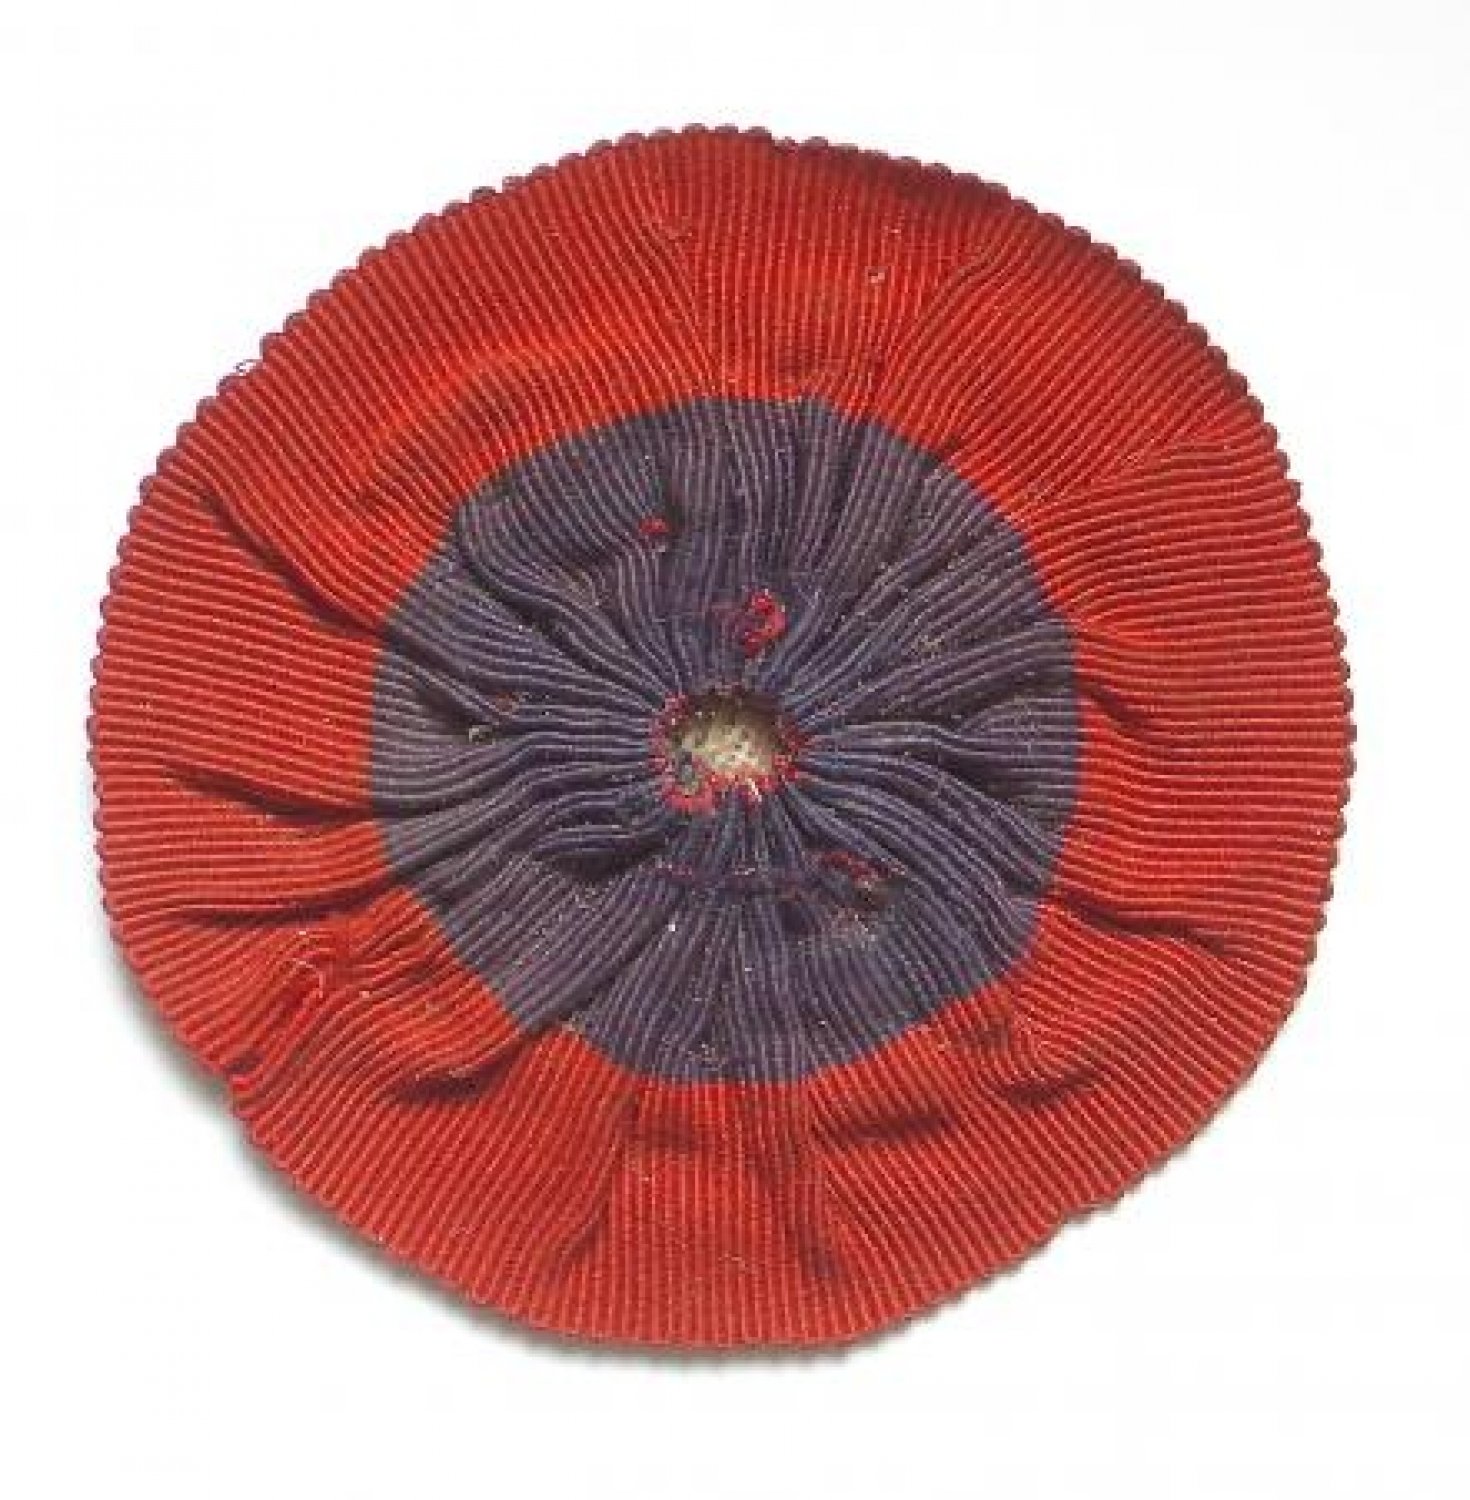 Imperial Yeomanry slouch hat rosette